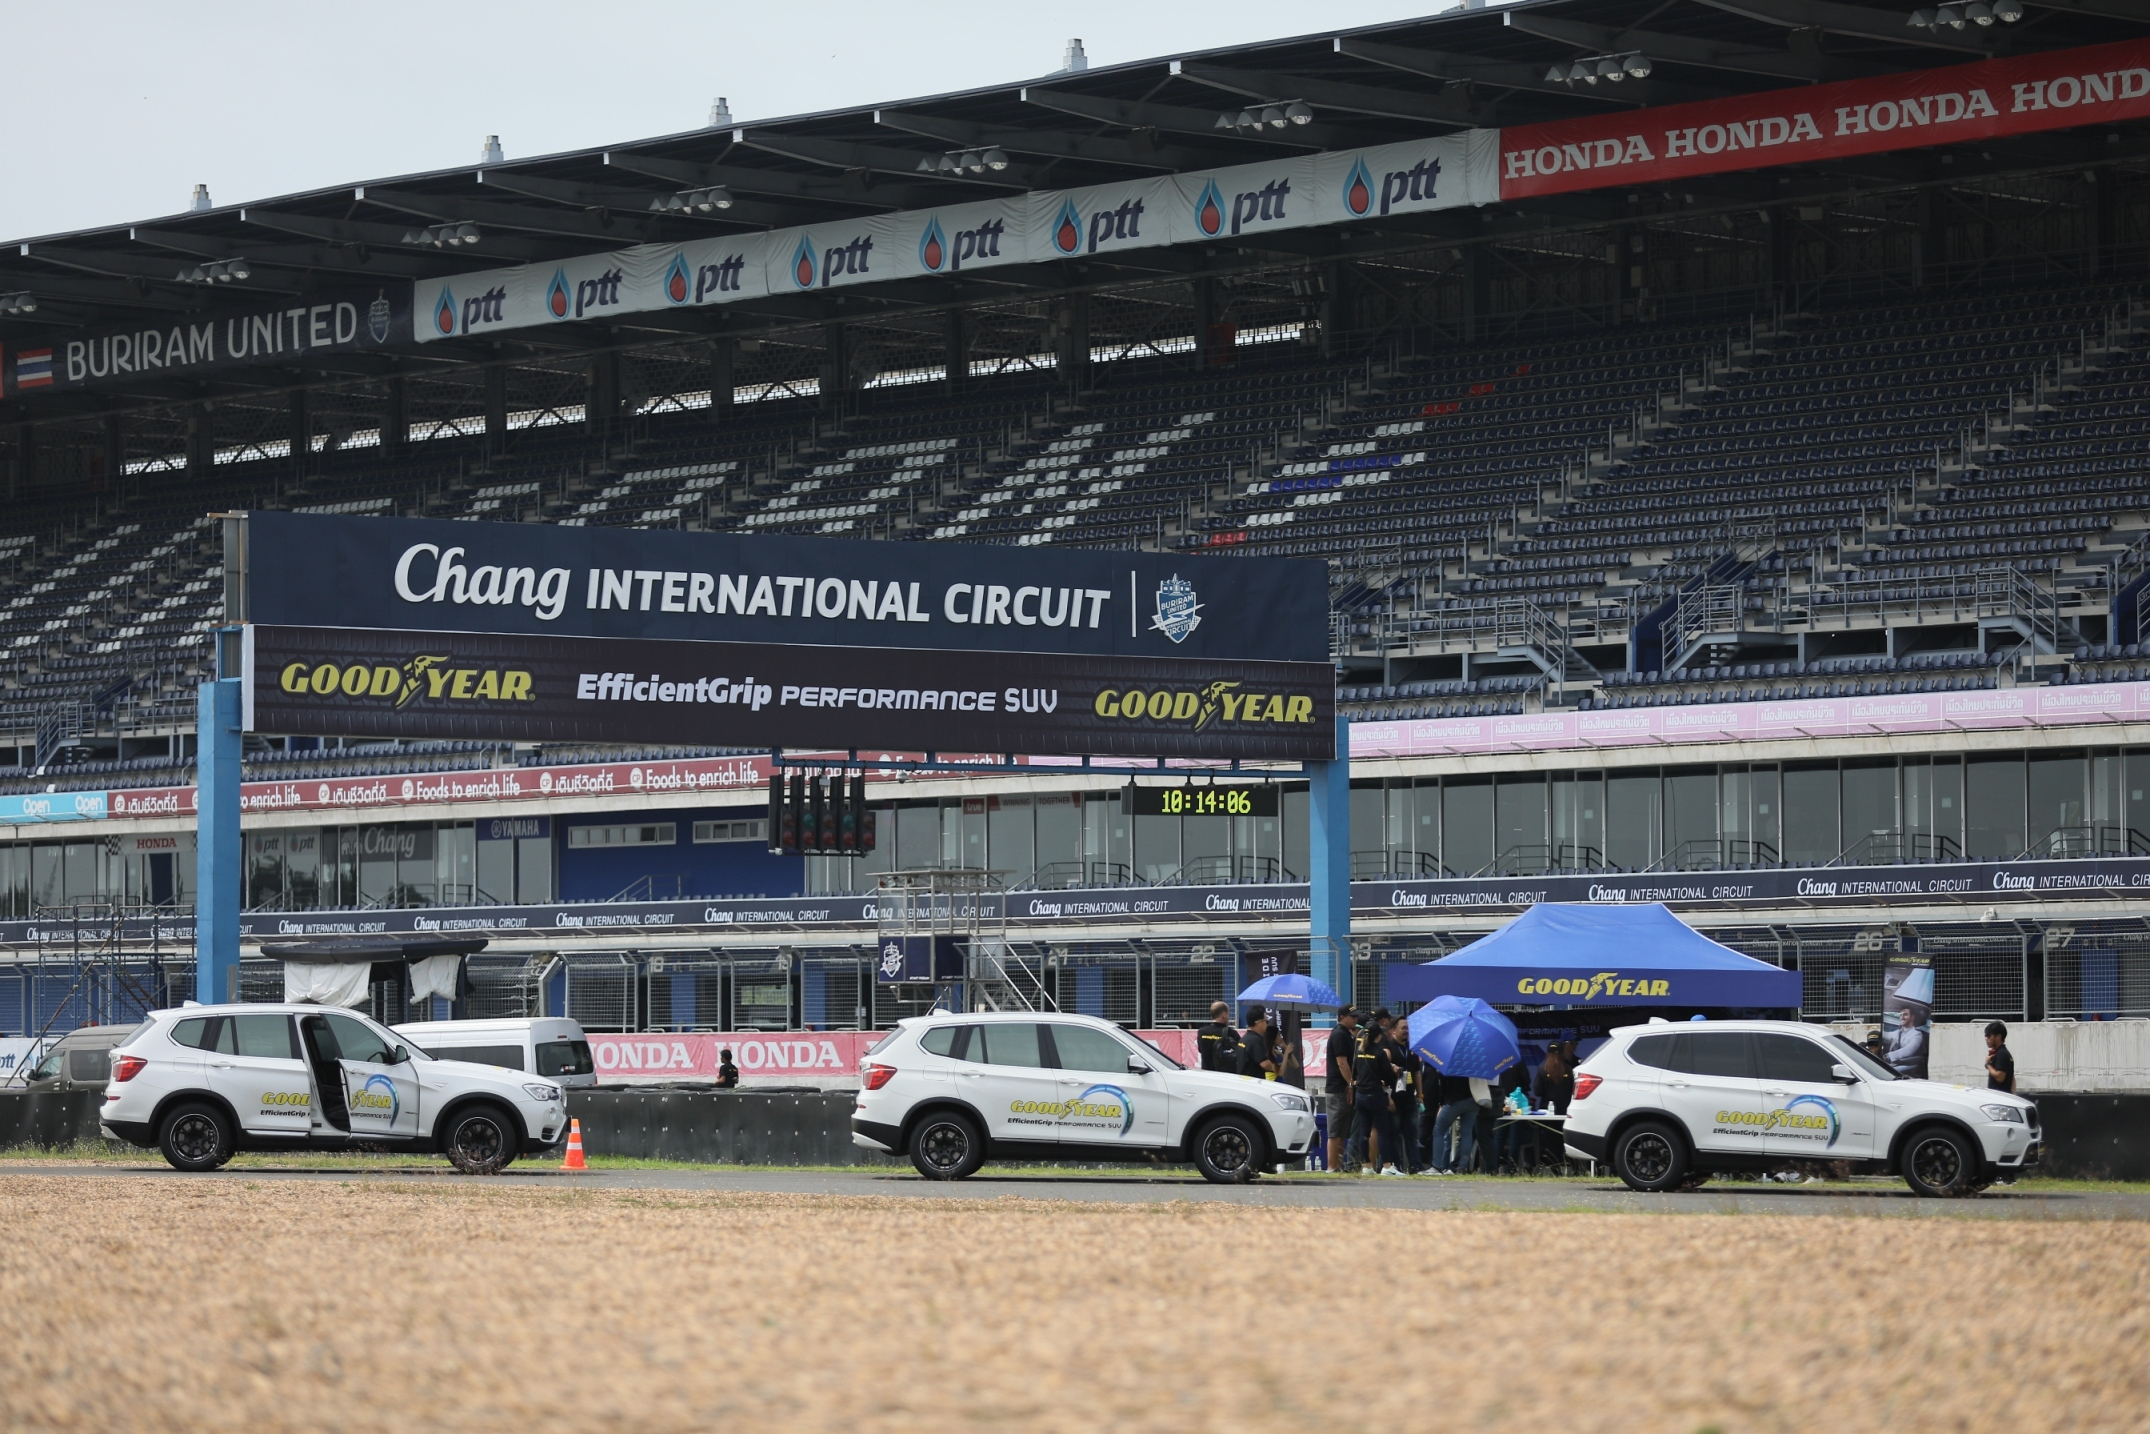 2 Goodyear於八月初在泰國布里蘭(Chang International Circuit, Buriram)舉辦休旅車胎Efficientgrip Performance SUV亞太區新胎發表會